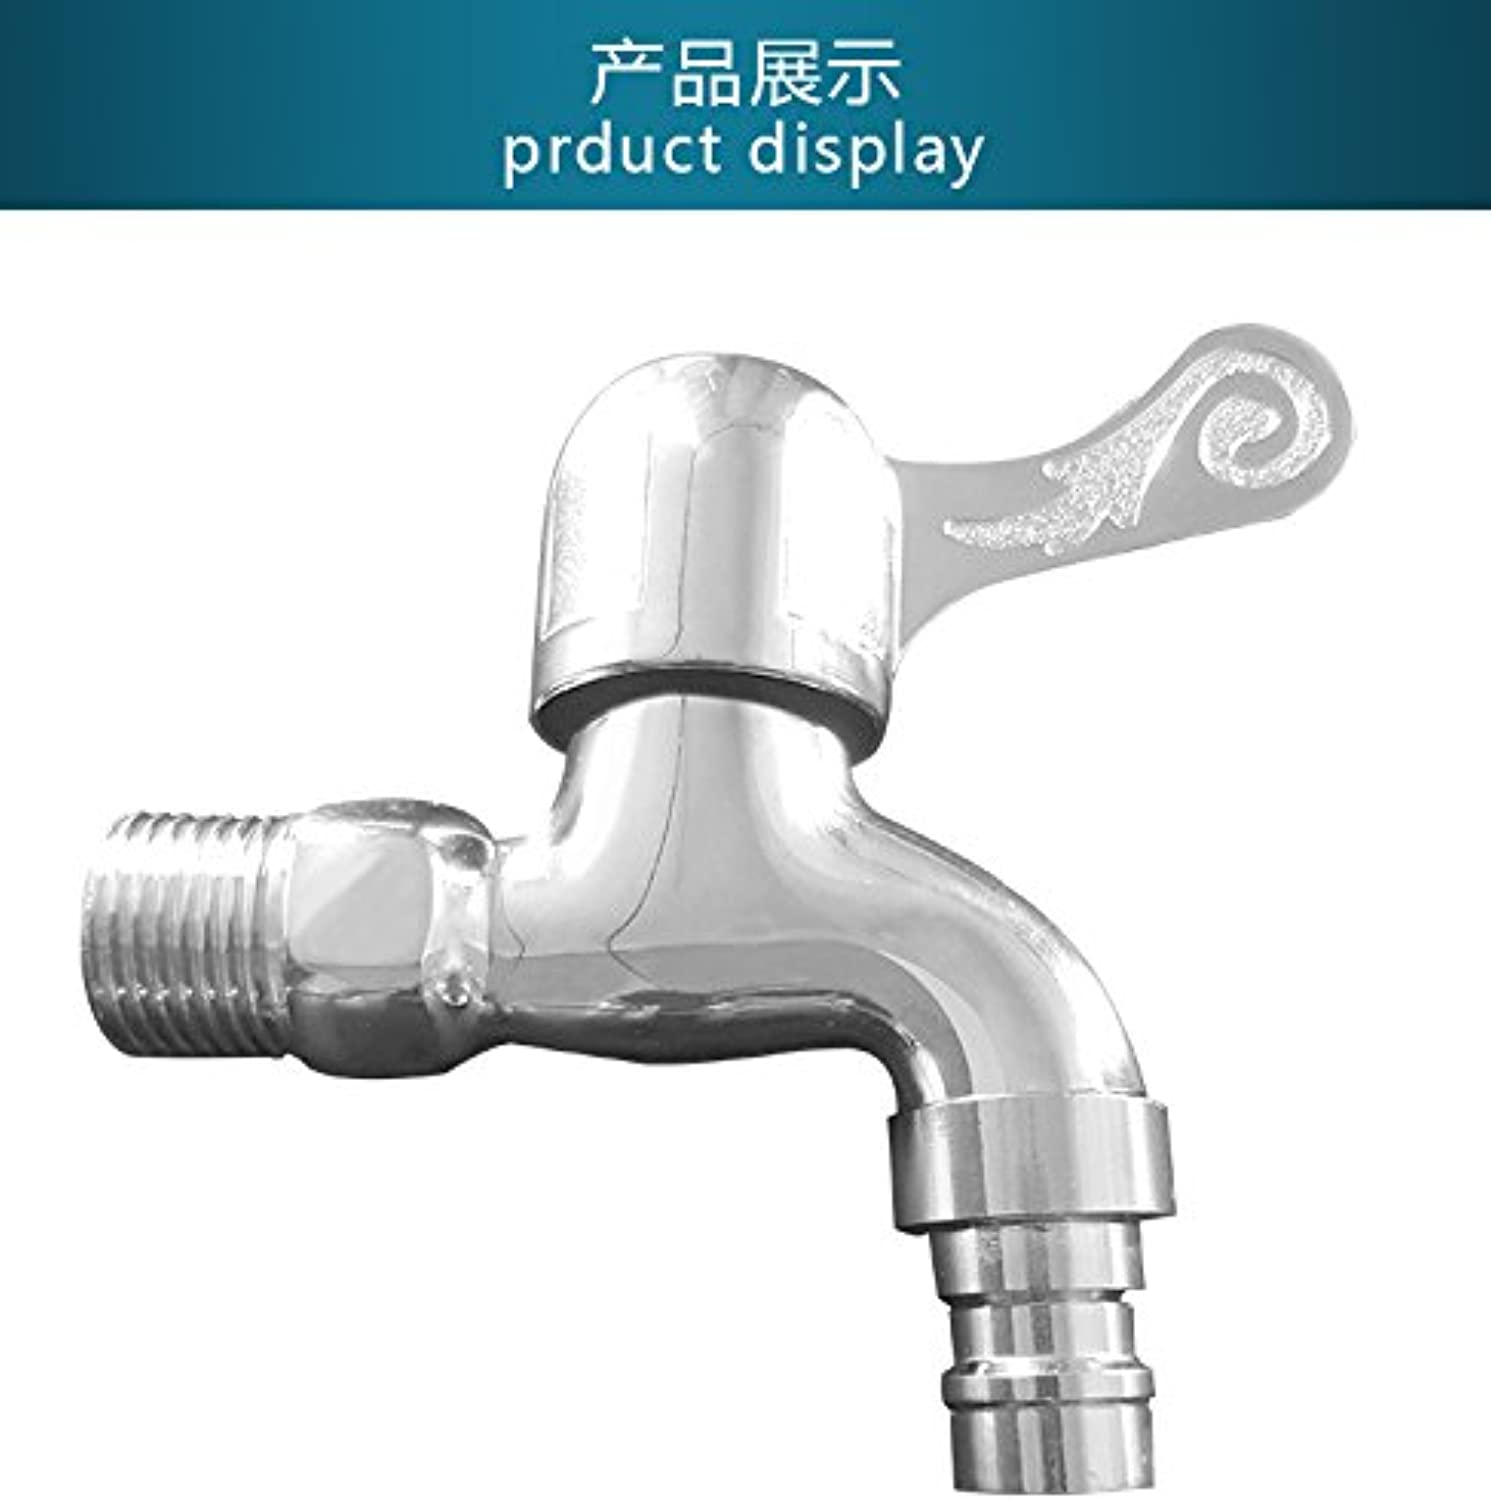 Lpophy Bathroom Sink Mixer Taps Faucet Bath Waterfall Cold and Hot Water Tap for Washroom Bathroom and Kitchen Single Cold Quick Opening Electroplated Copper B